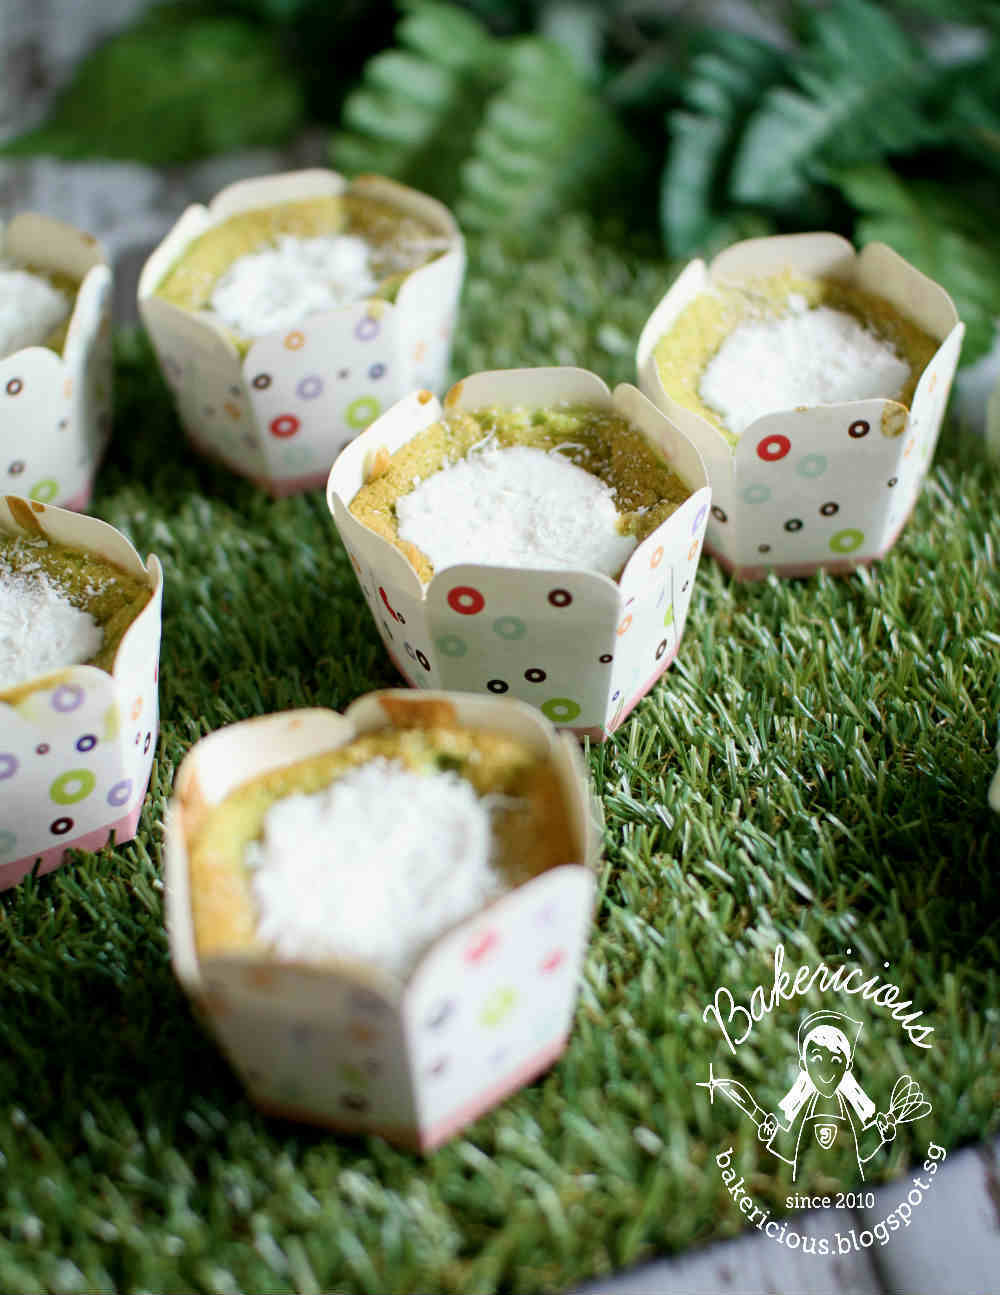 Pandan Coconut Rice Flour Chiffon Cupcakes with Coconut Ice Cream 班兰米粉戚风杯子蛋糕 - 椰子雪糕馅 LTU #22